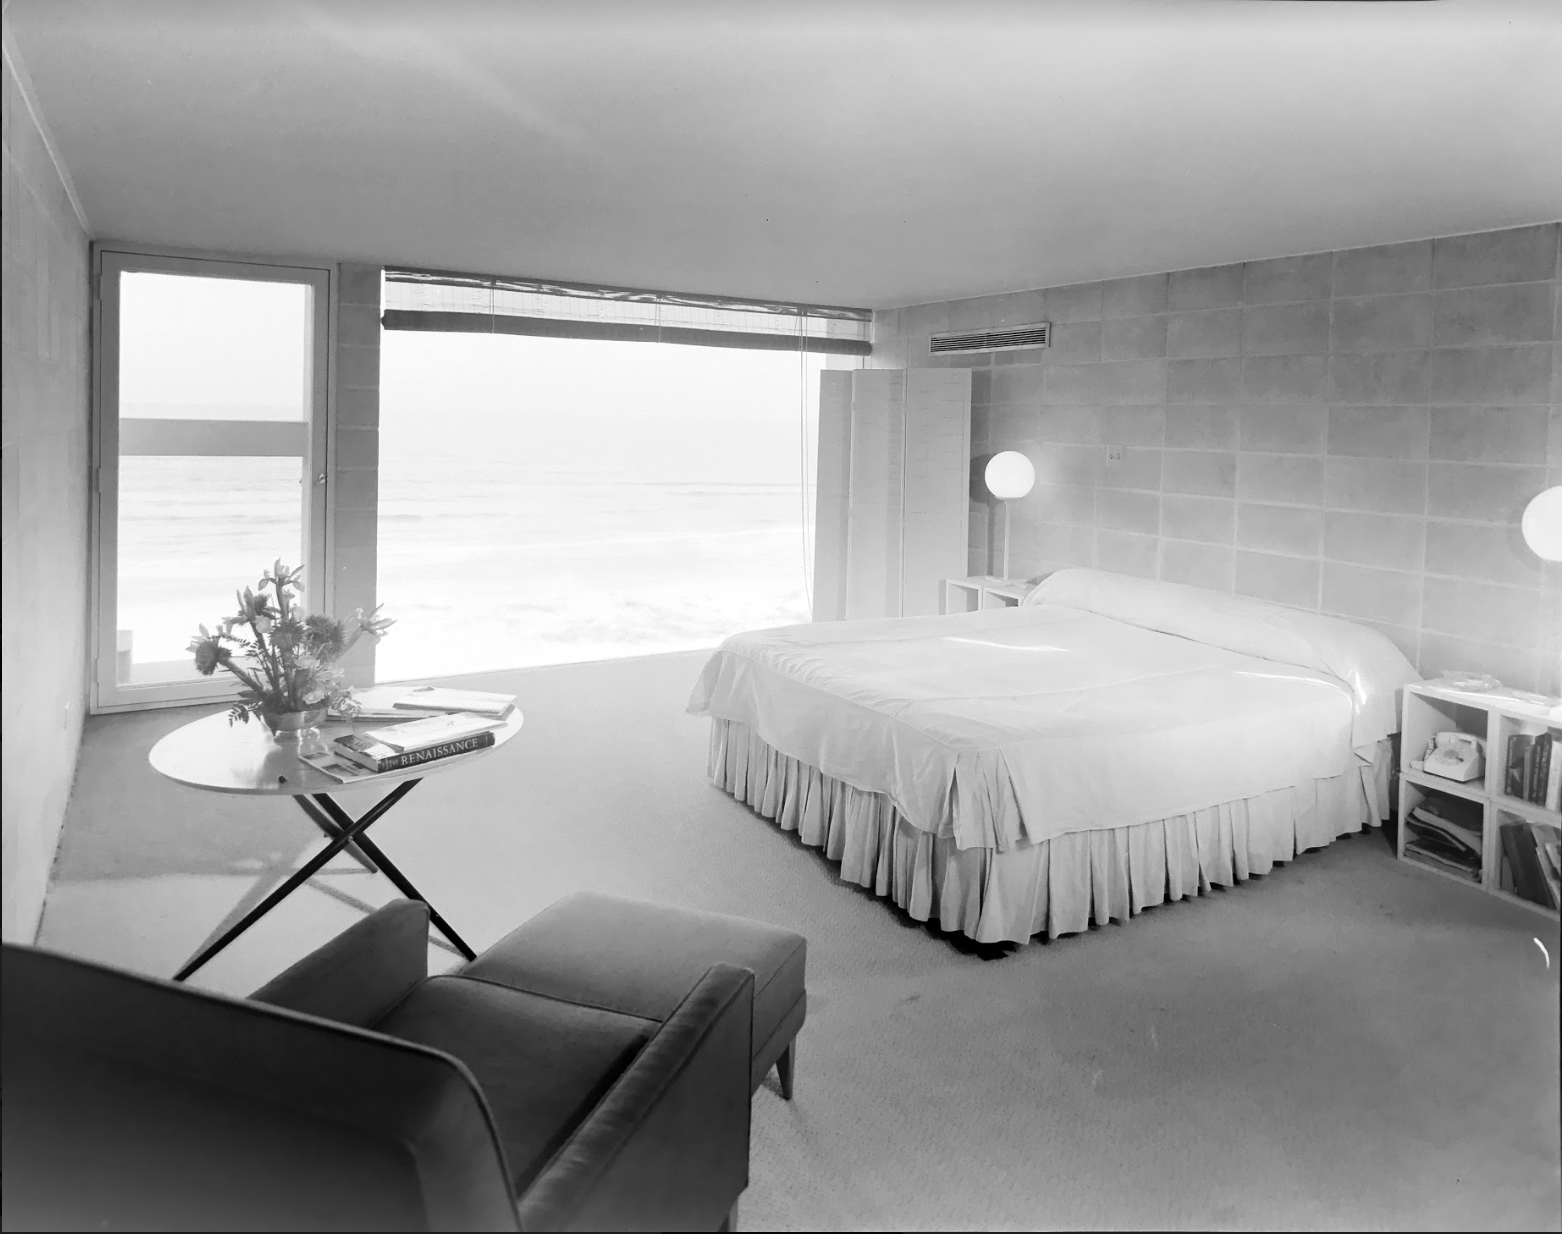 Milam Residence Bedroom, 25 January 1962